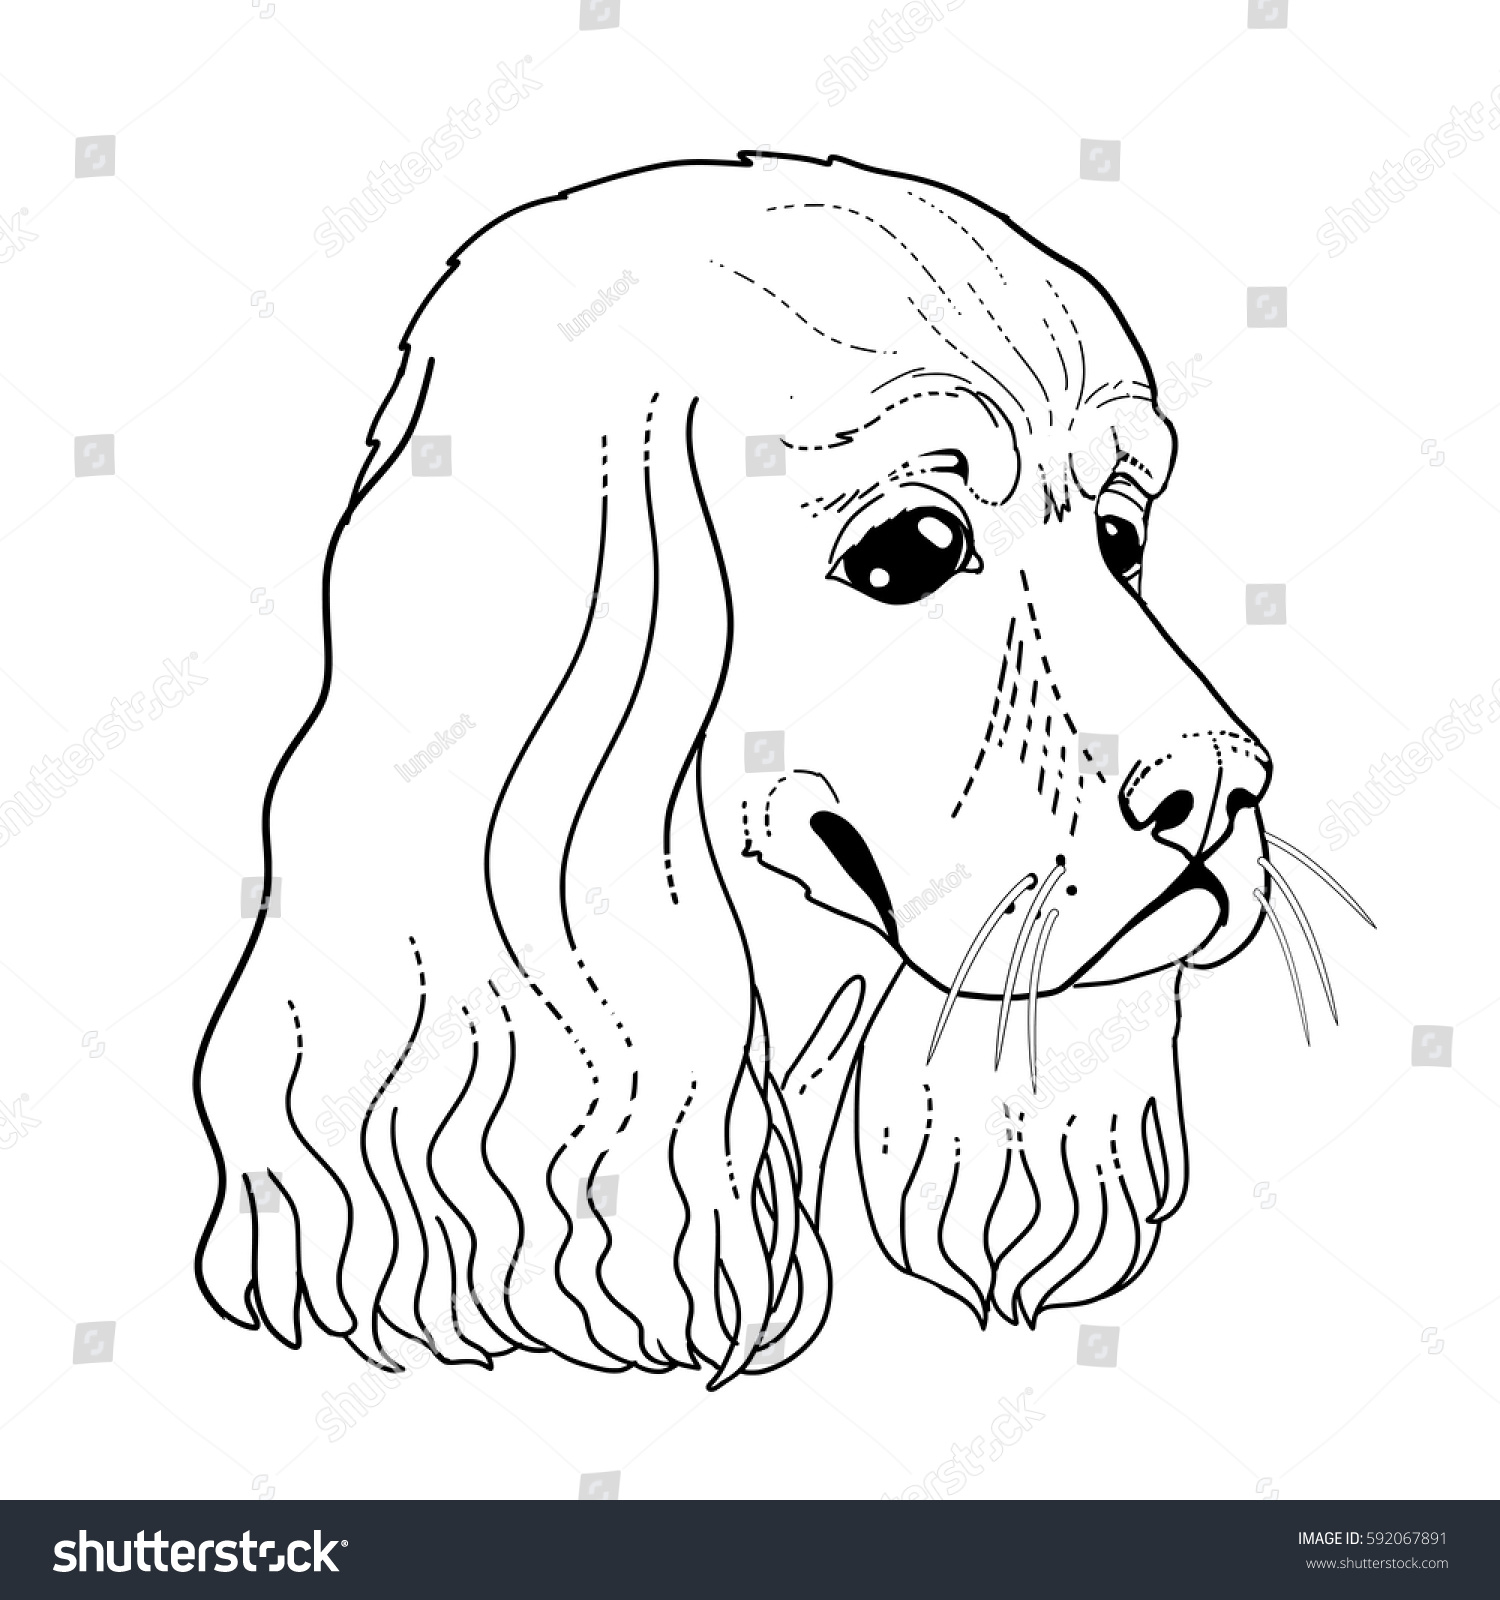 Dog Head Line Draw Coloring Book Page With Spaniel Face Vector Illustration